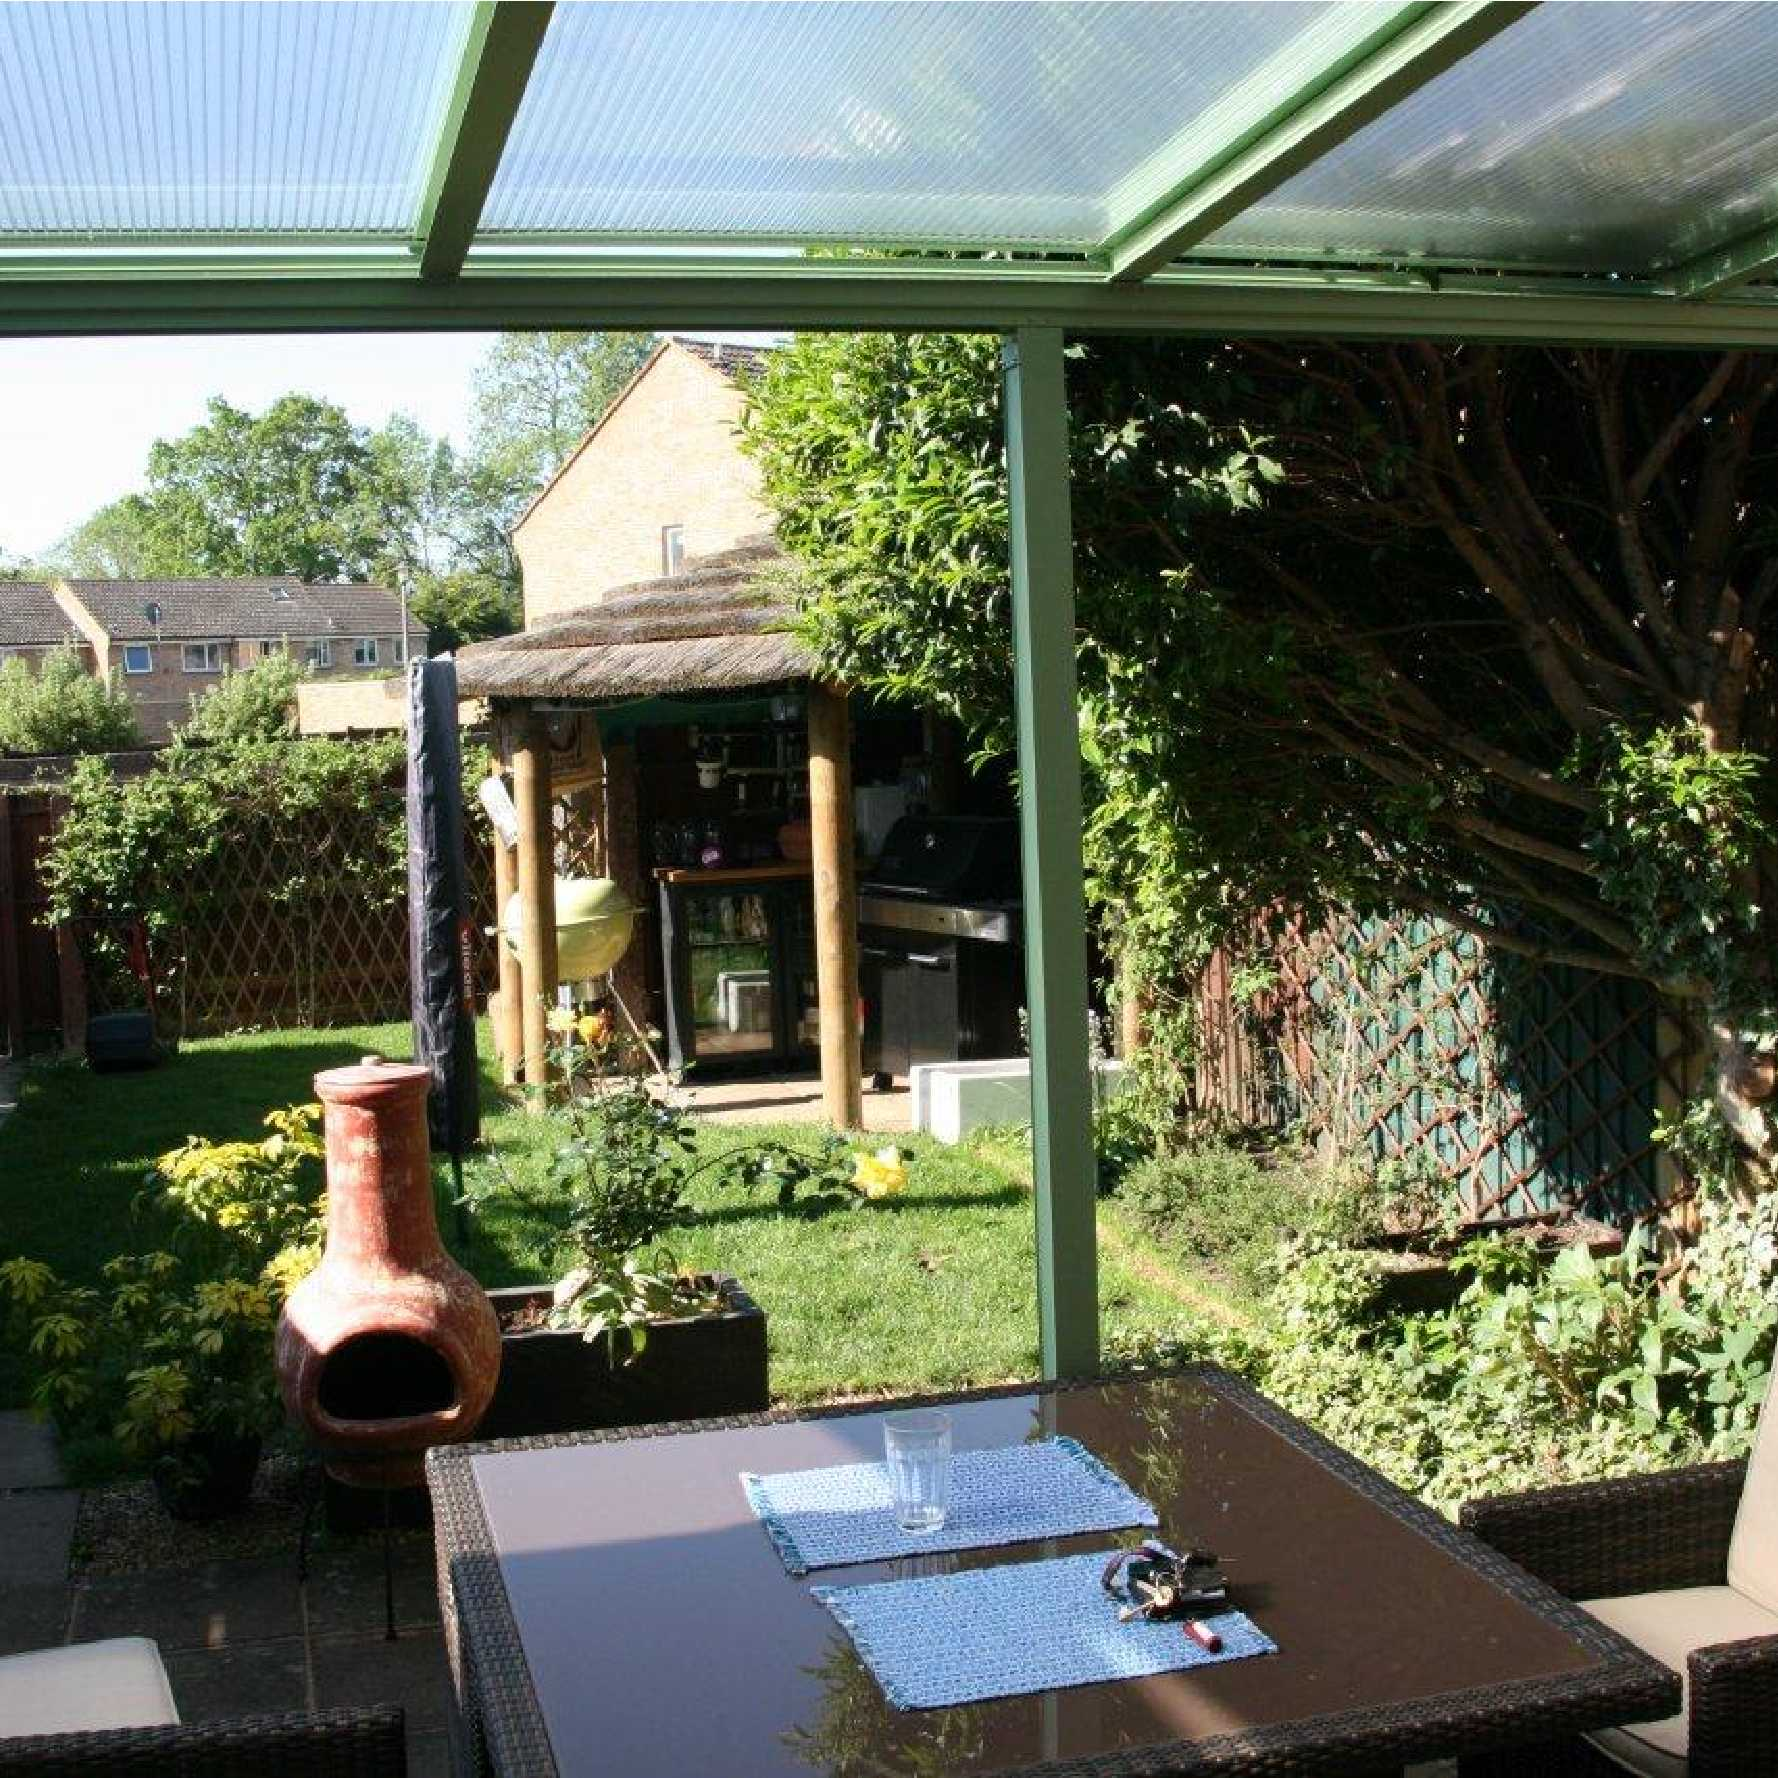 Affordable Omega Smart WhiteLean-To Canopy with 16mm Polycarbonate Glazing - 8.4m (W) x 2.0m (P), (4) Supporting Posts